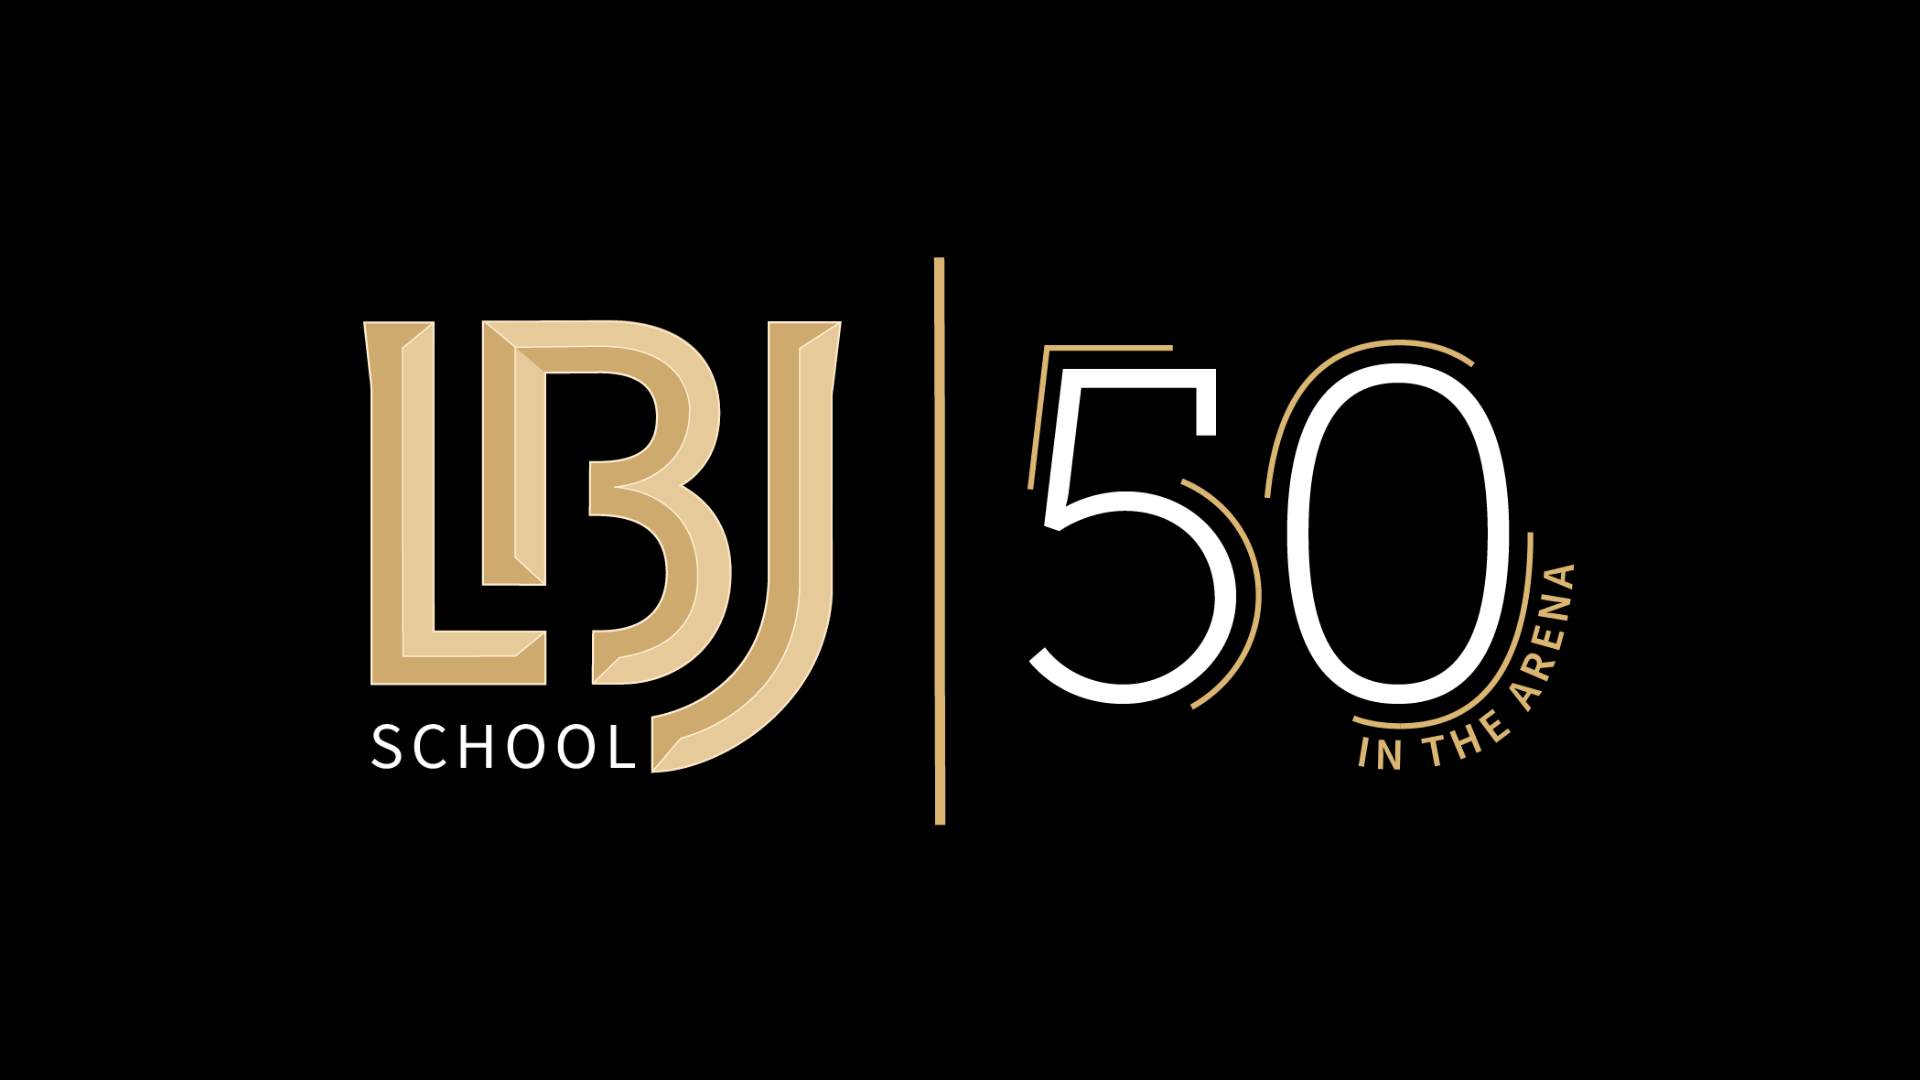 LBJ School 50th Anniversary logo